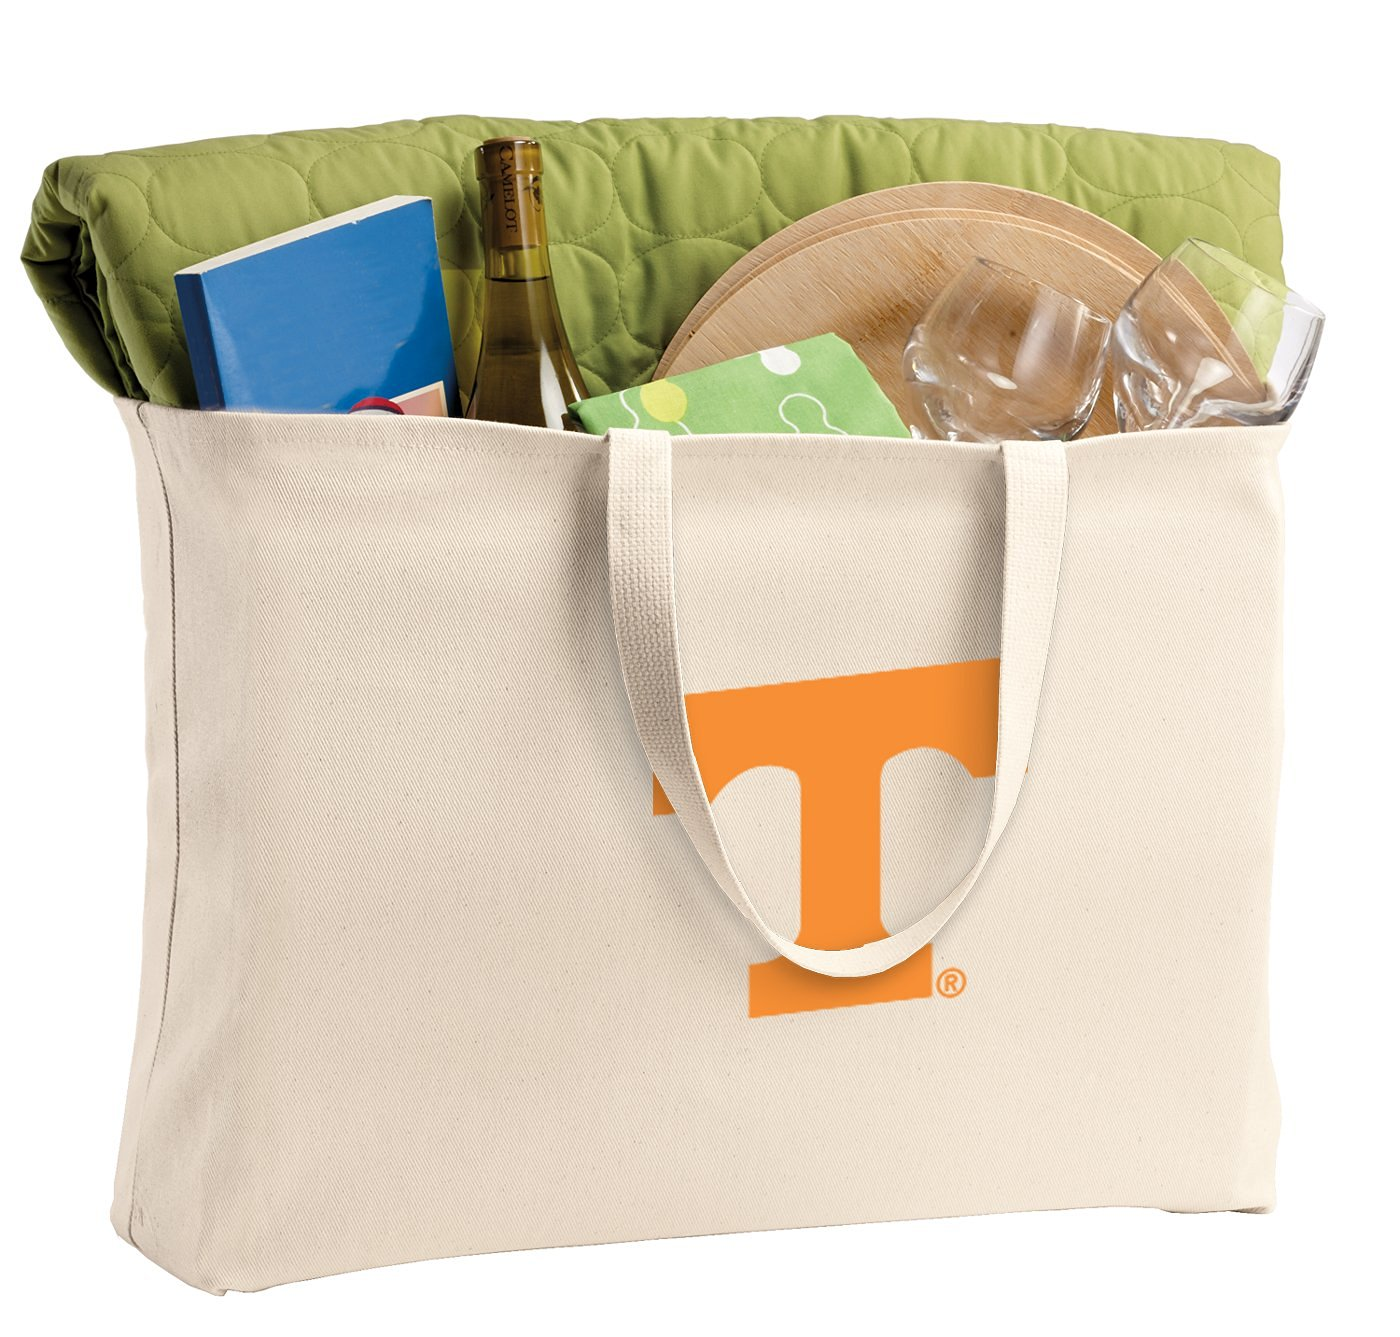 JUMBO University of Tennessee Tote Bag or Large Canvas Tennessee Vols Shopping Bag